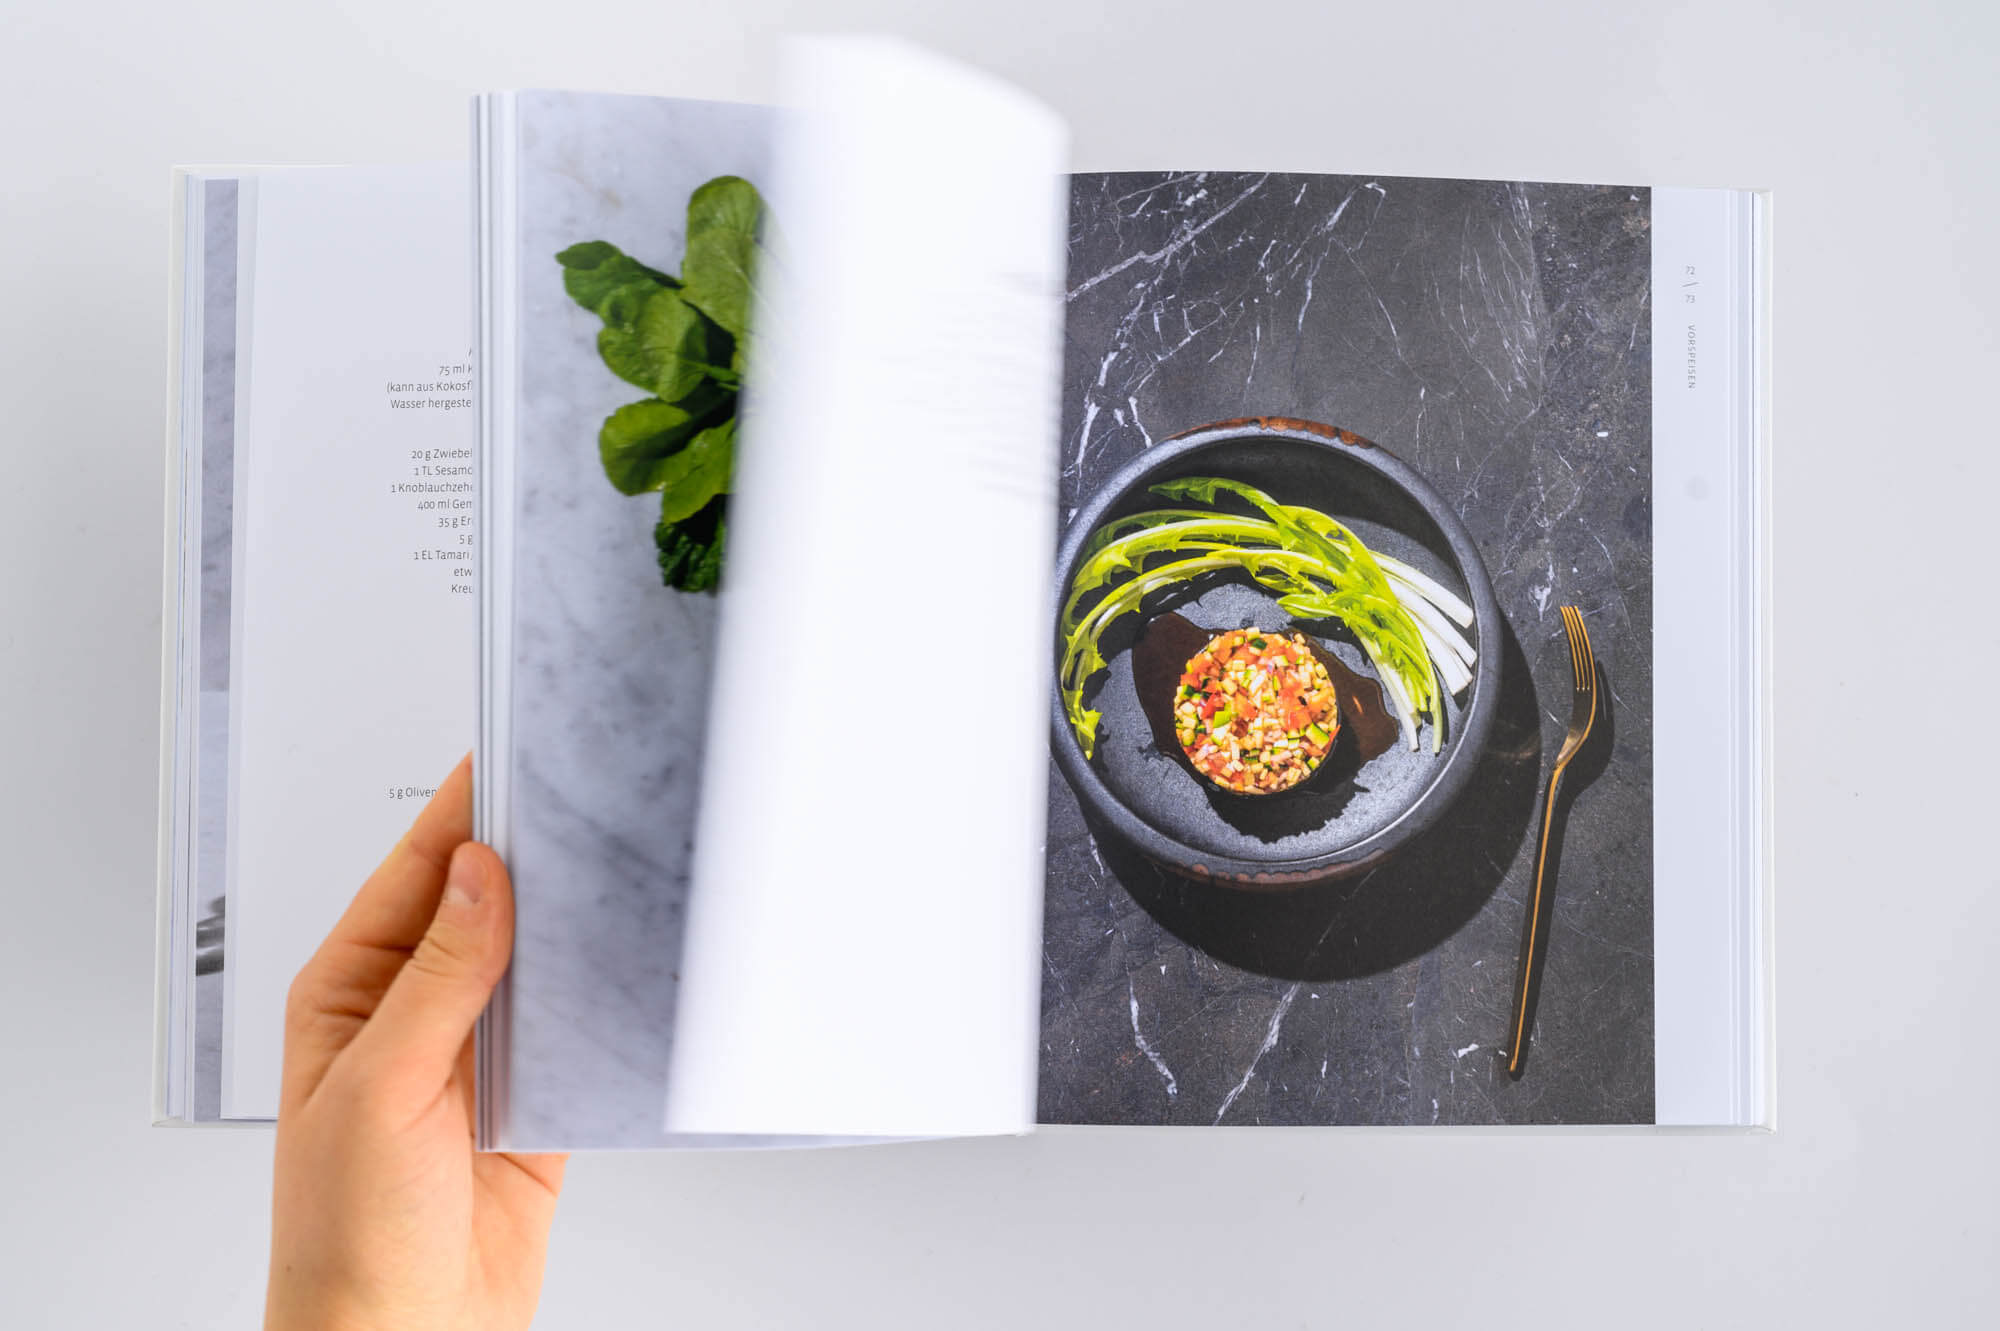 Cooking healthy food at home with the Buchinger Wilhelmi cookbook